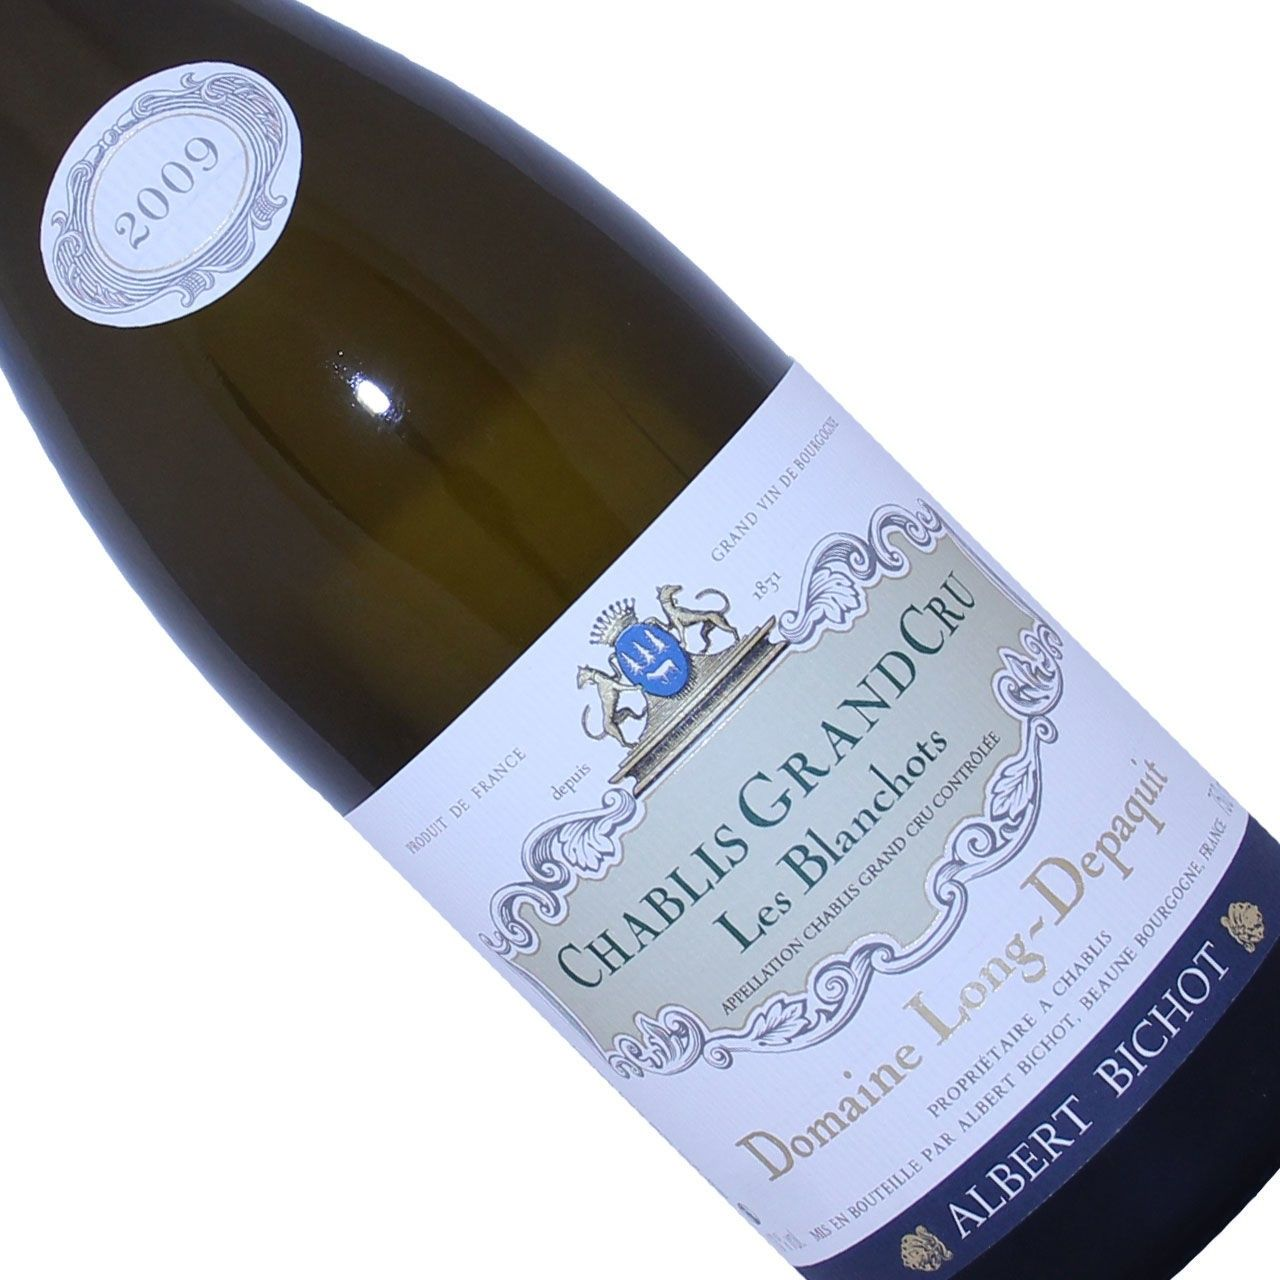 Buy 2017 Albert Bichot Chablis | Price and Reviews at Drinks&Co | 1280x1280